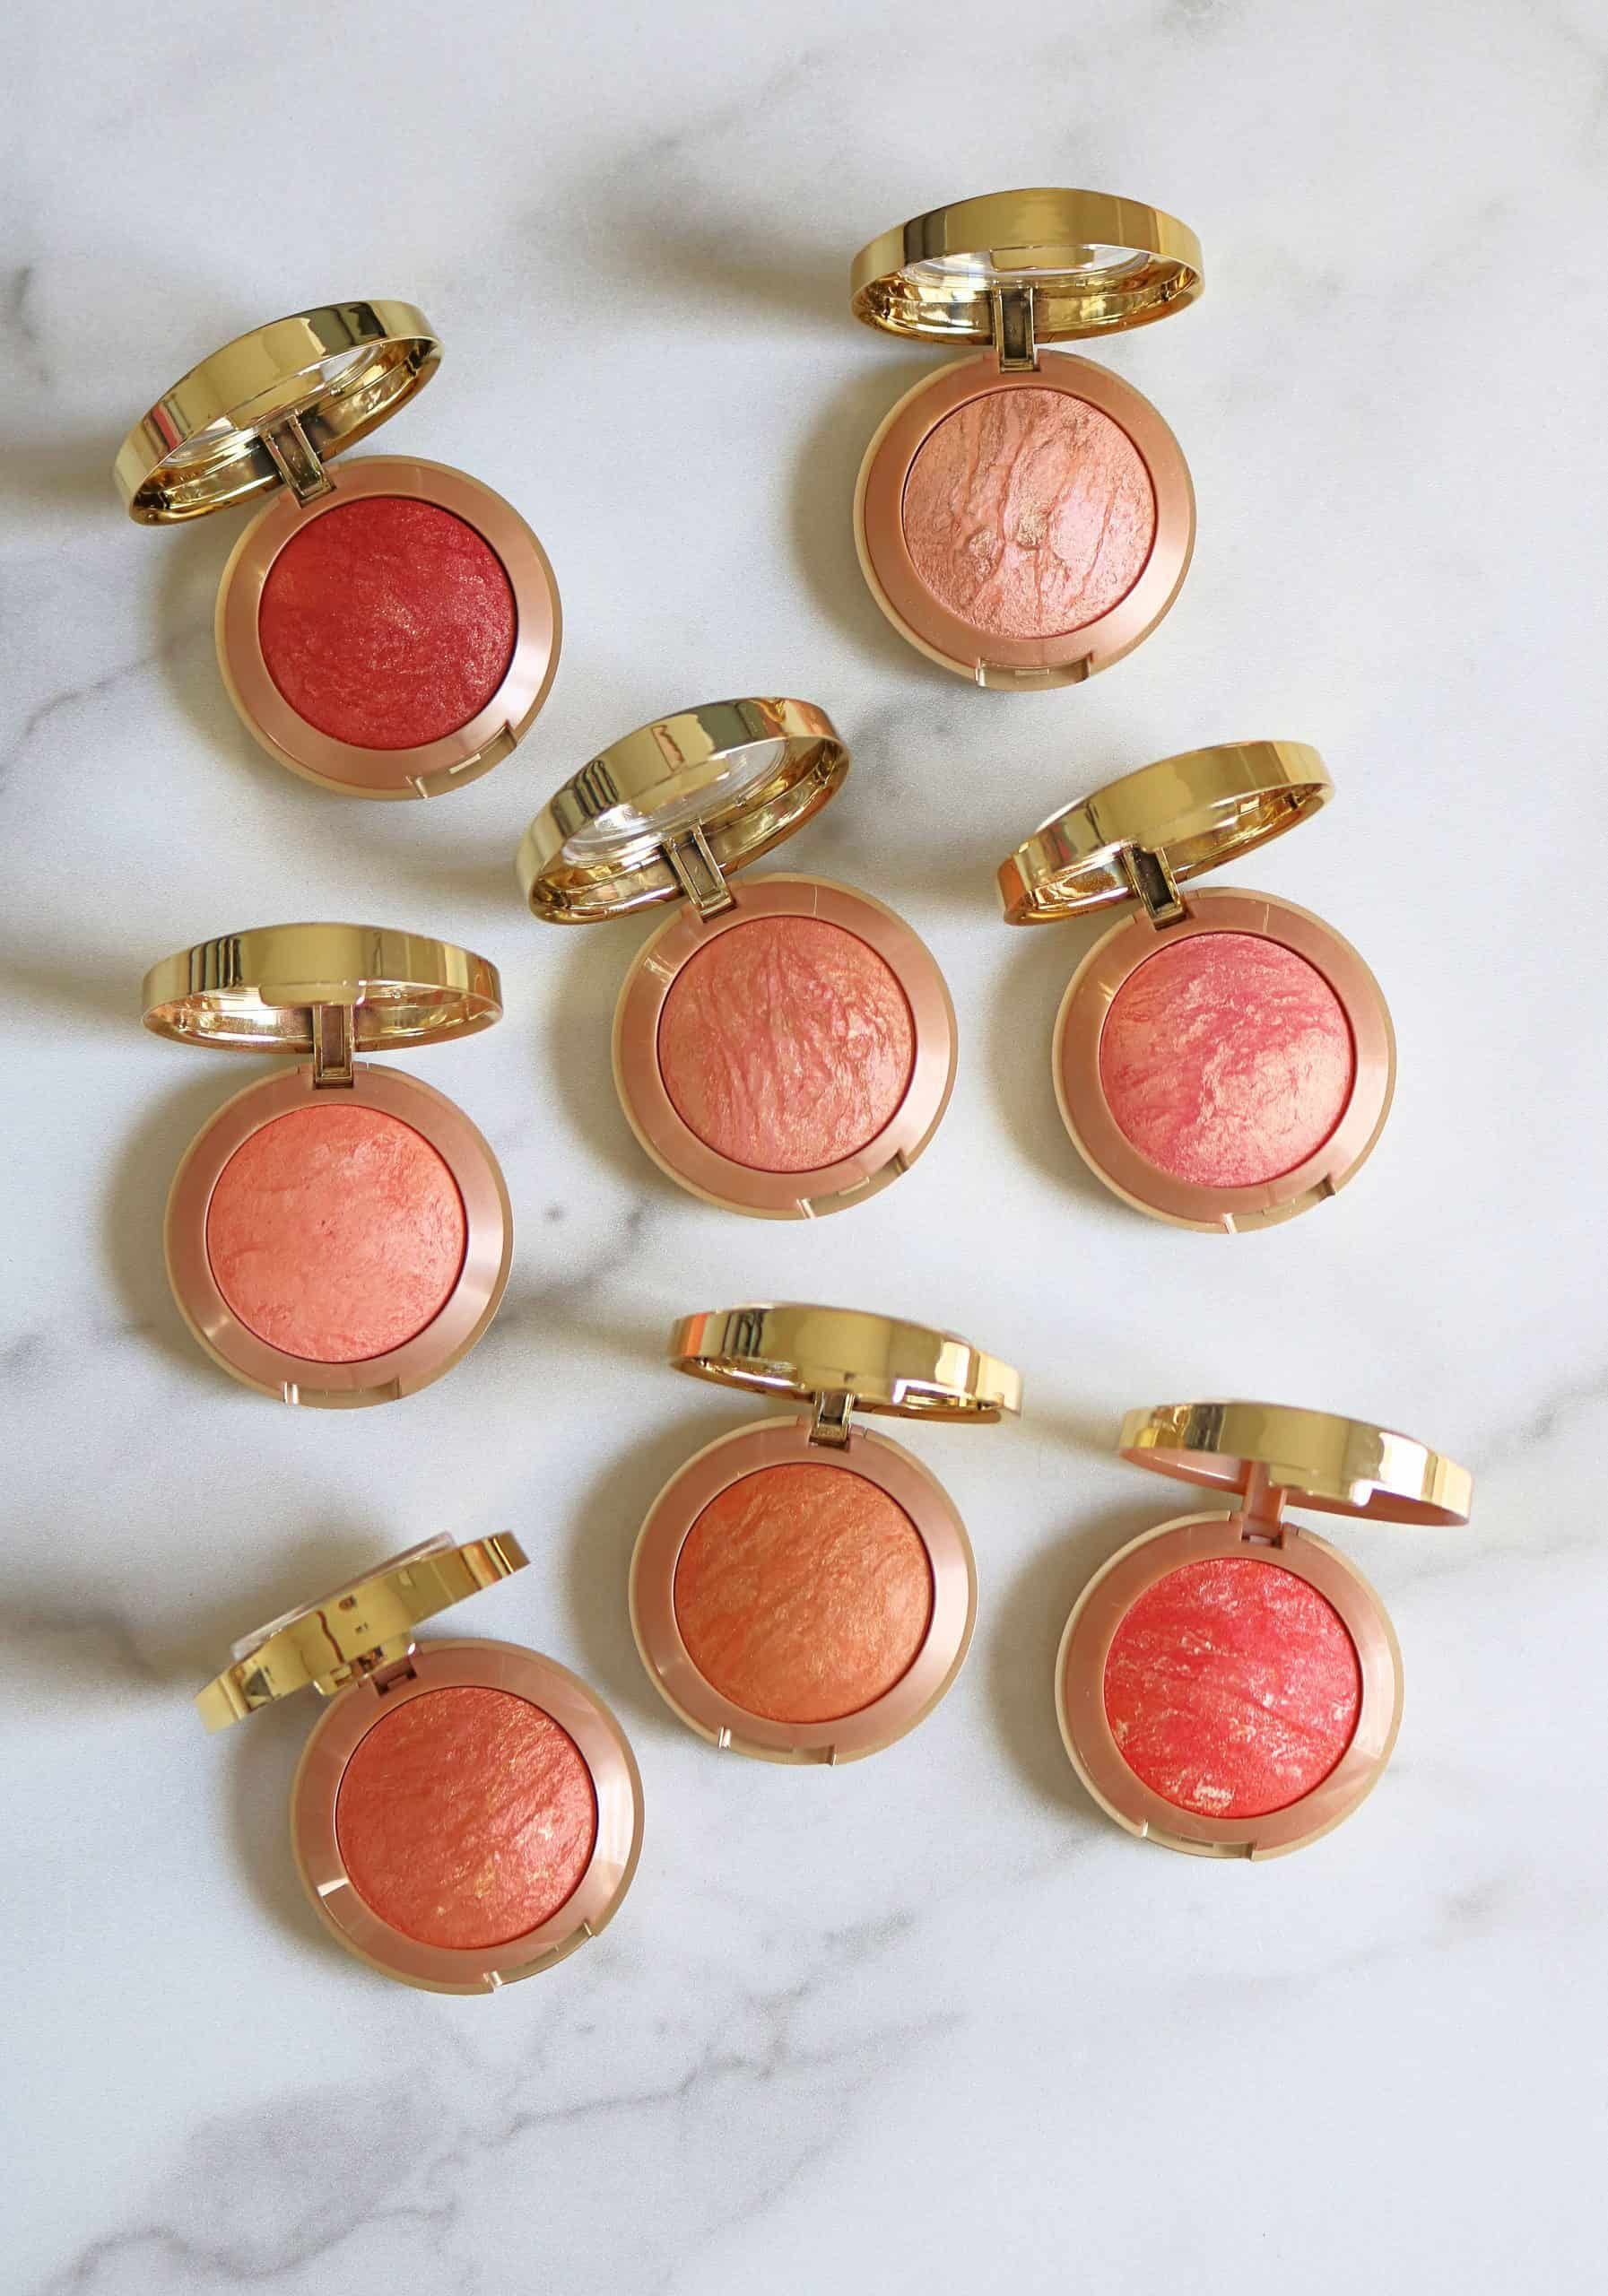 Looking for the best drugstore blushes? Check out my Milani Baked Blushes swatches and review with the 8 BEST shades to buy for your makeup collection. #drugstoremakeup #drugstoreblush #blush #milanibakedblush #bestmakeup